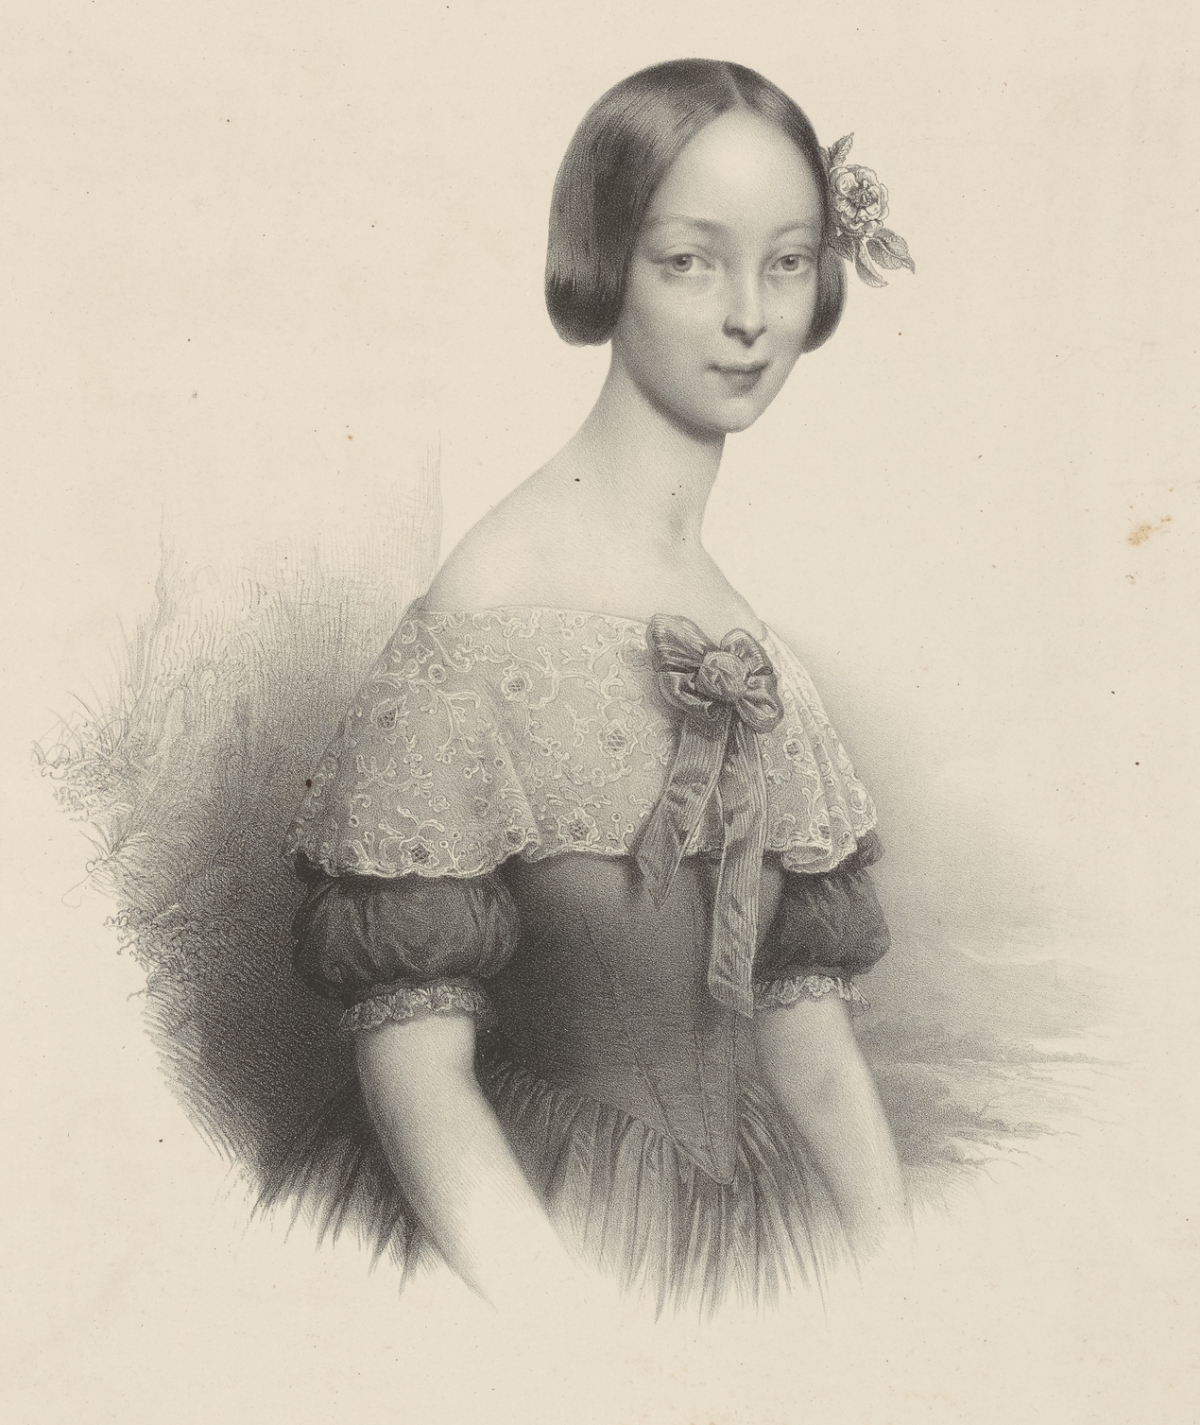 1840s hairstyle